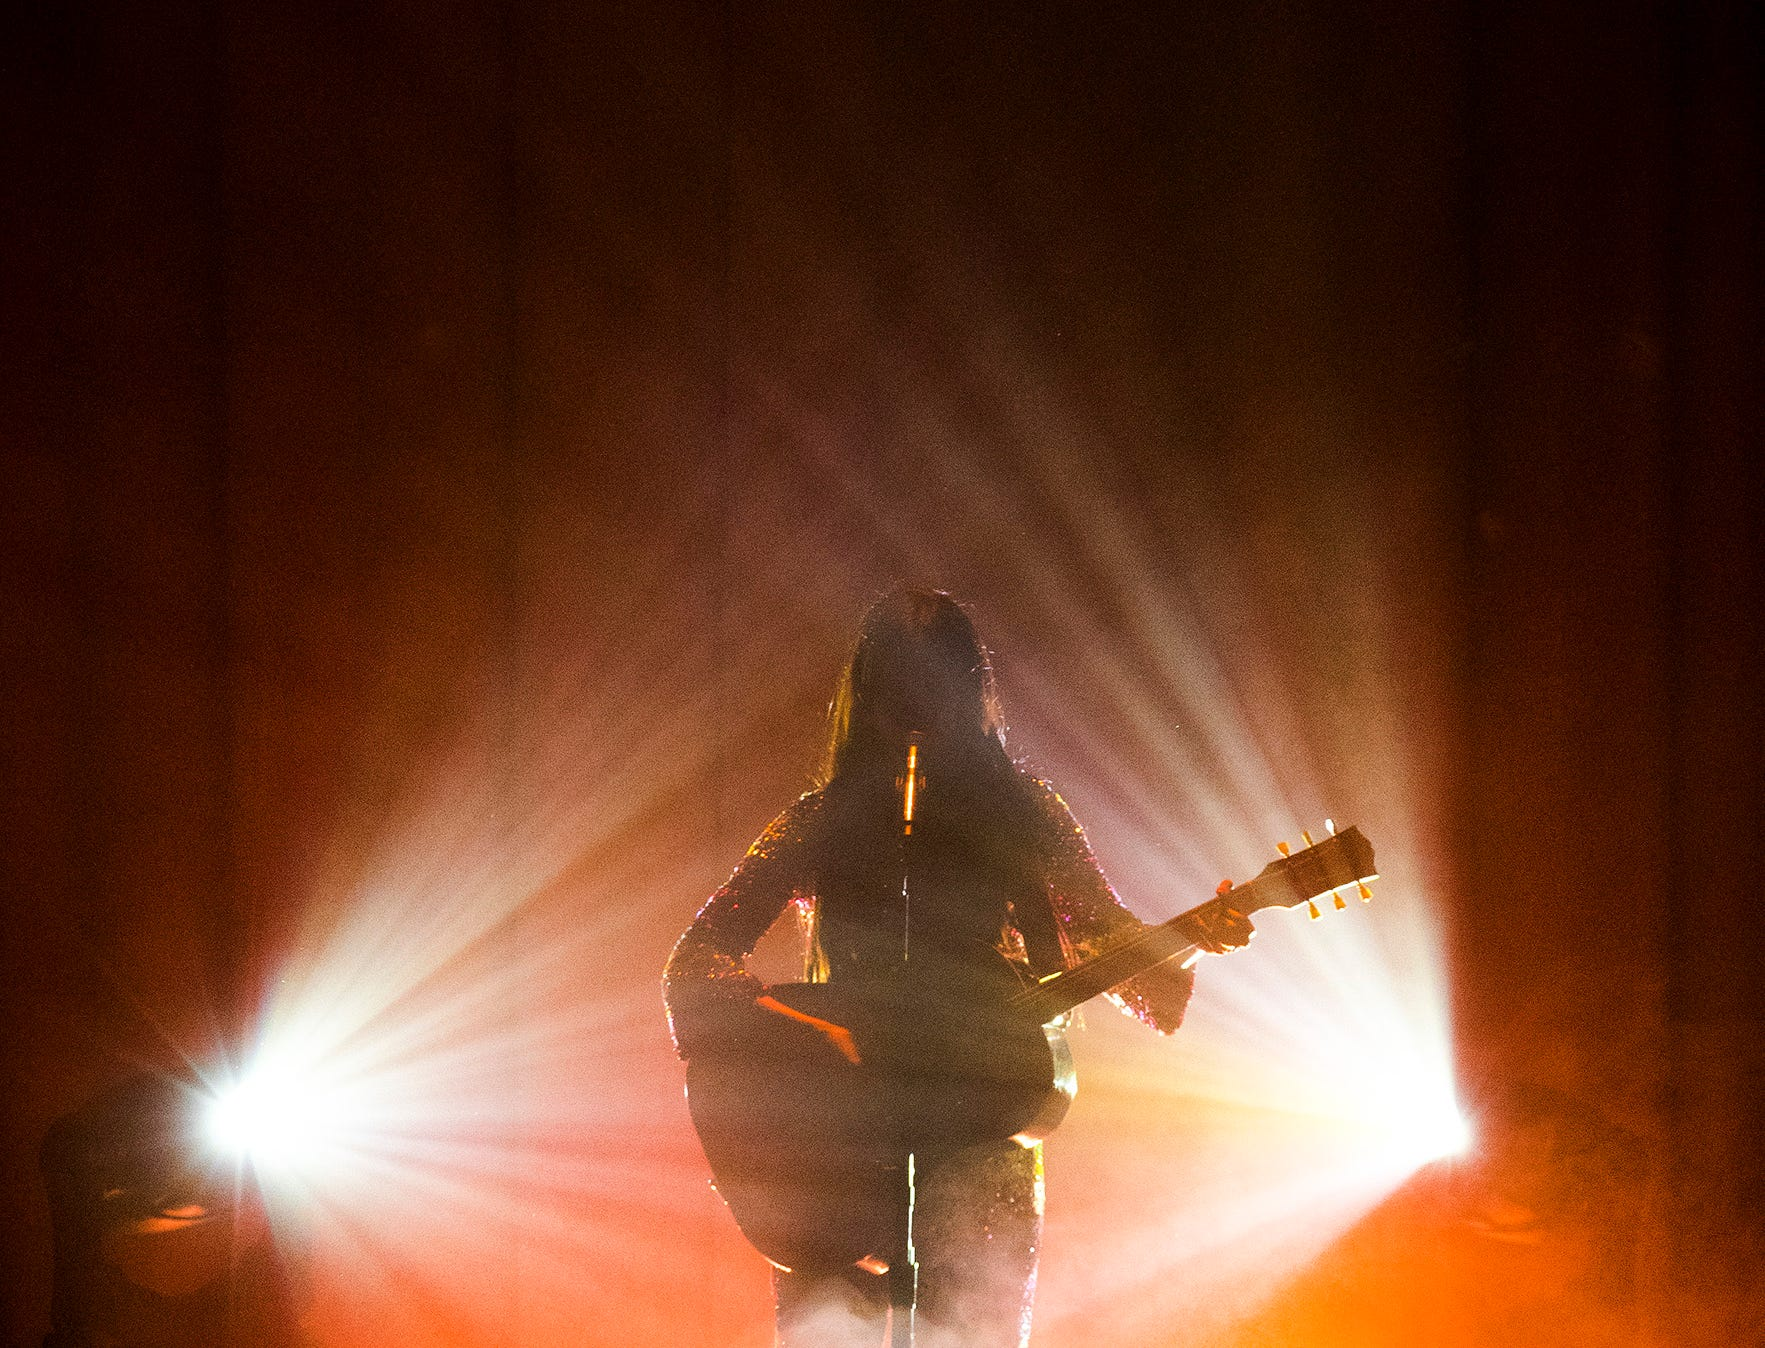 Kacey Musgraves performs for a sold out crowd at the Murat Theatre in Old National Centre on Wednesday, Jan. 9, 2019.